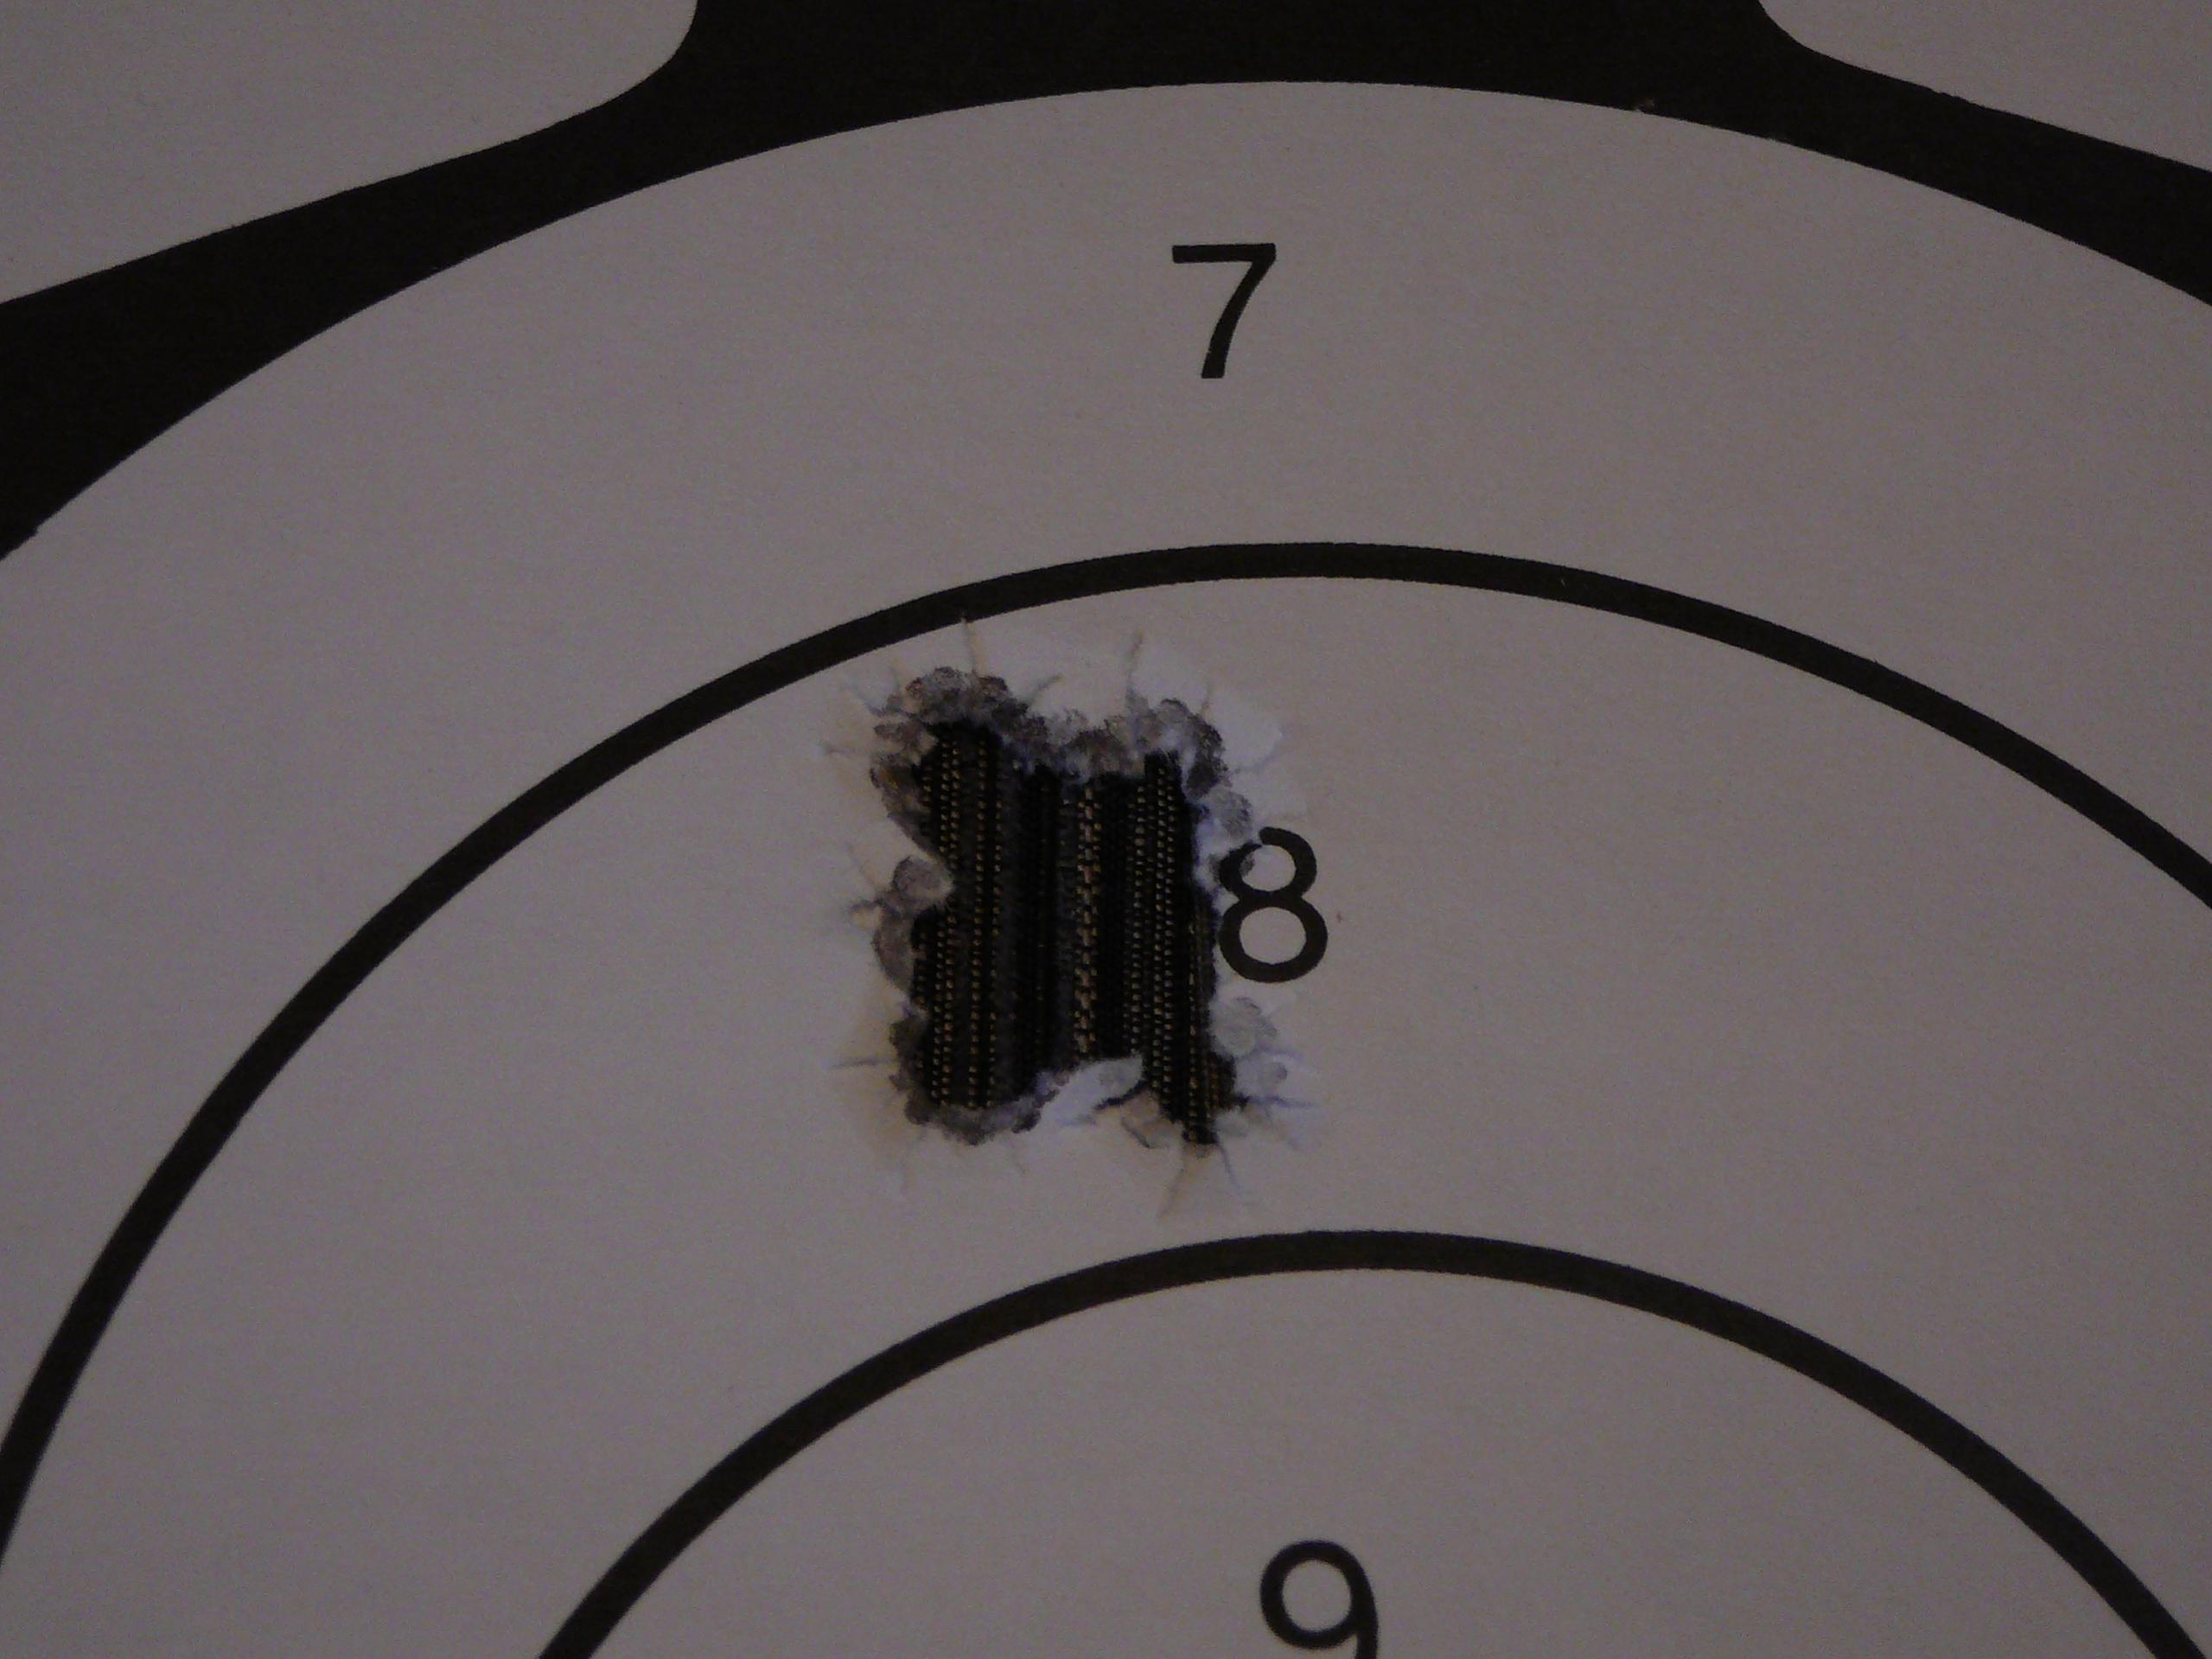 Range Report of First 200 Rounds with the M&P45!-p1020175.jpg